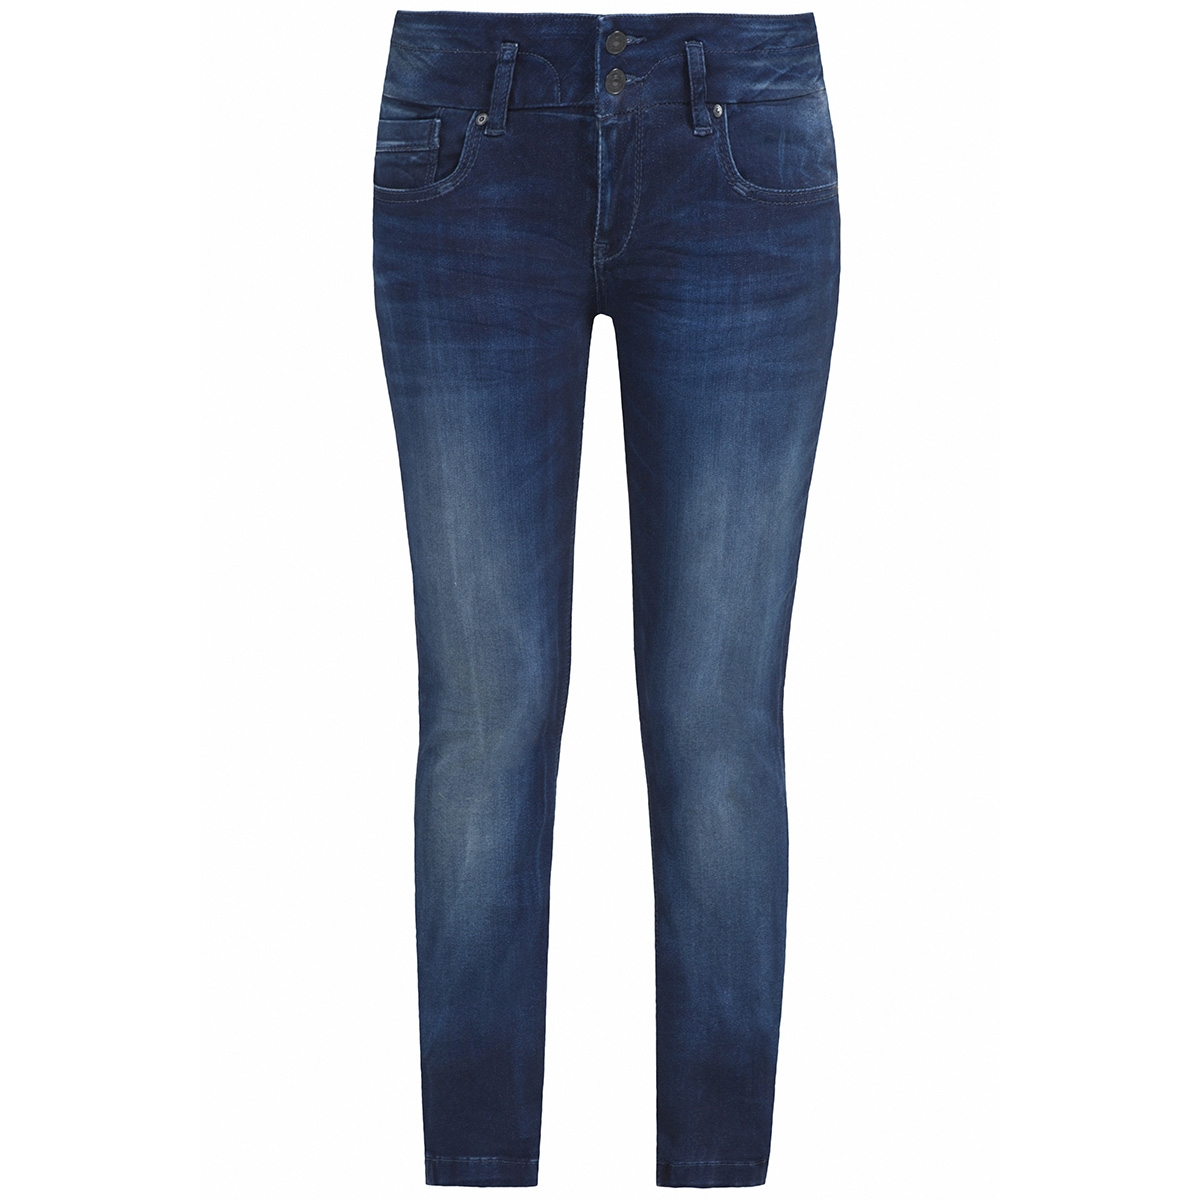 100950618.12585 molly ltb jeans penny wash